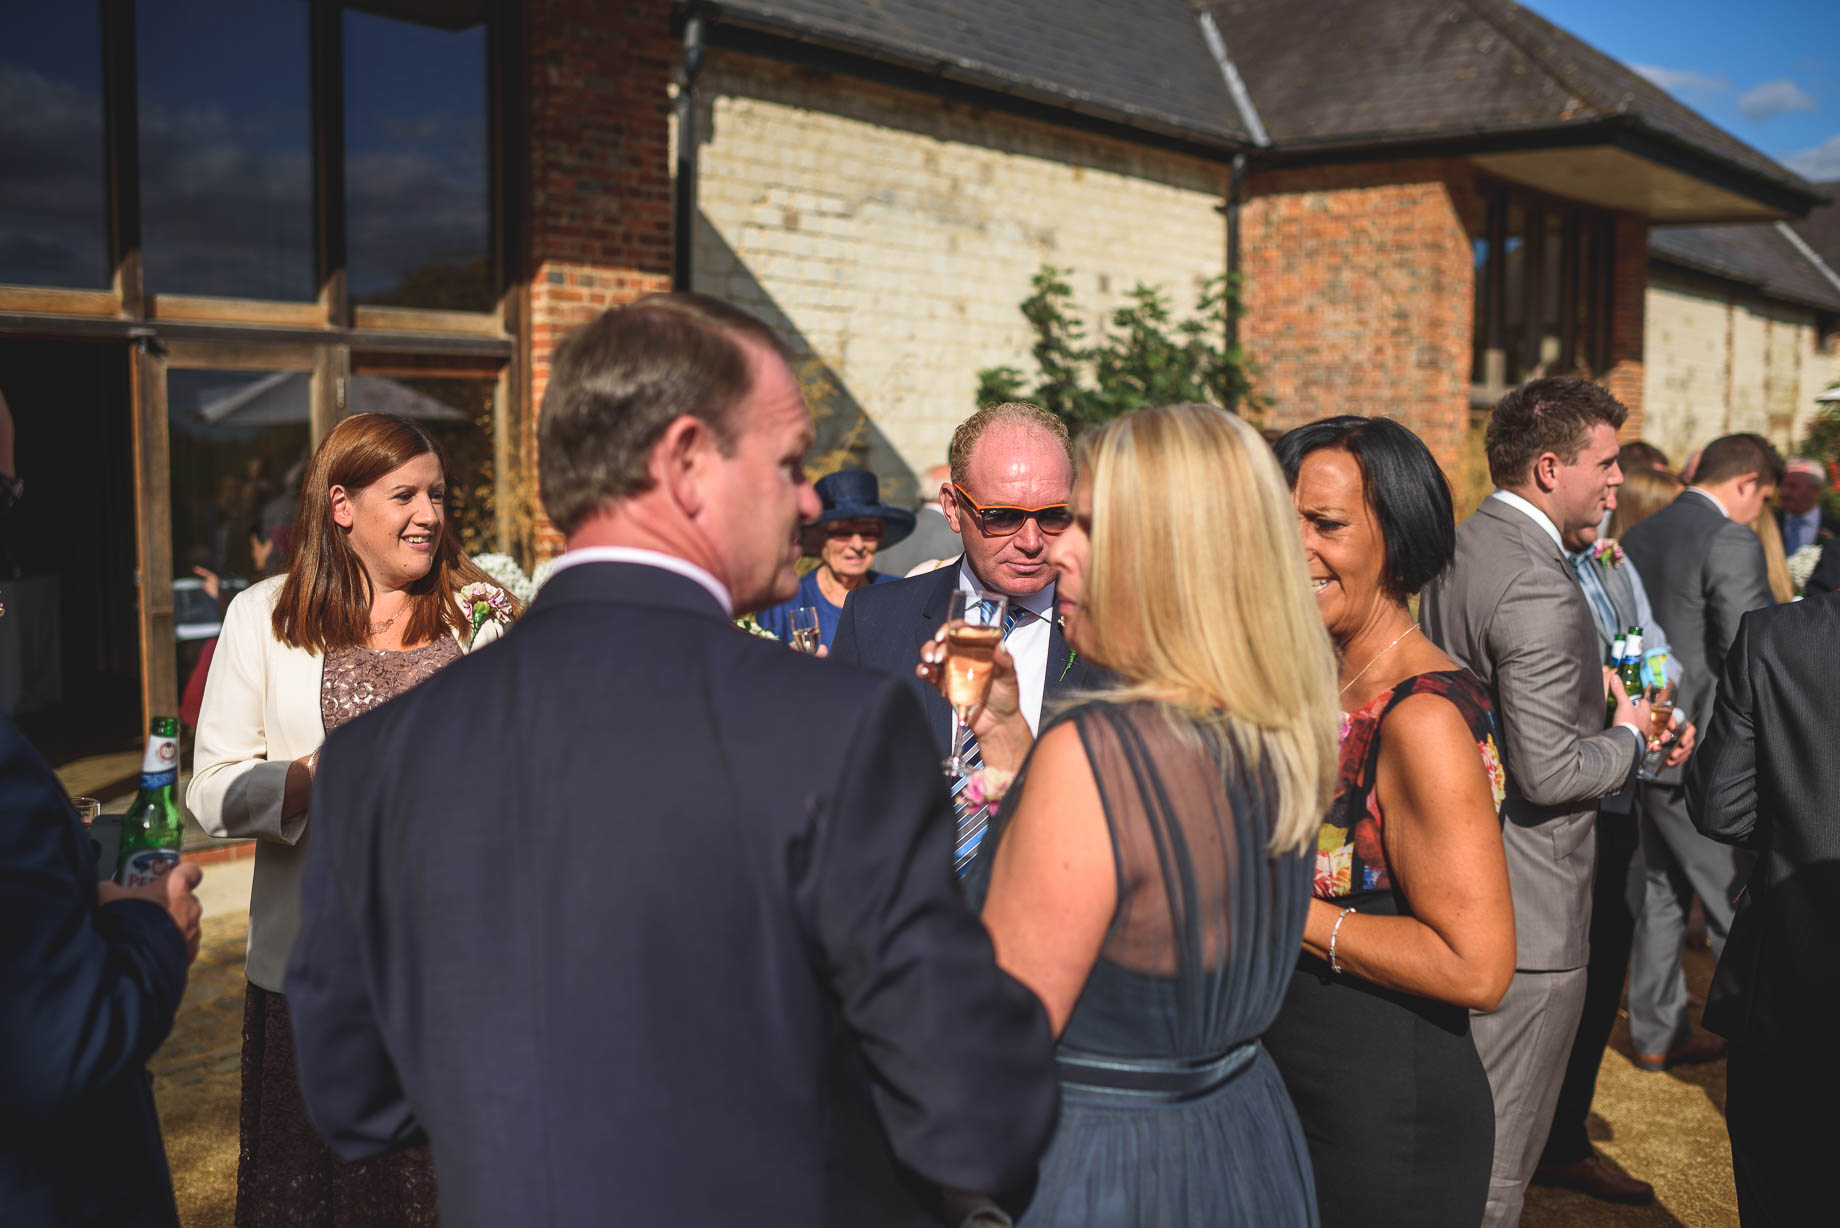 Bury Court Barn wedding photography - Guy Collier - Kate and Russ (86 of 187)